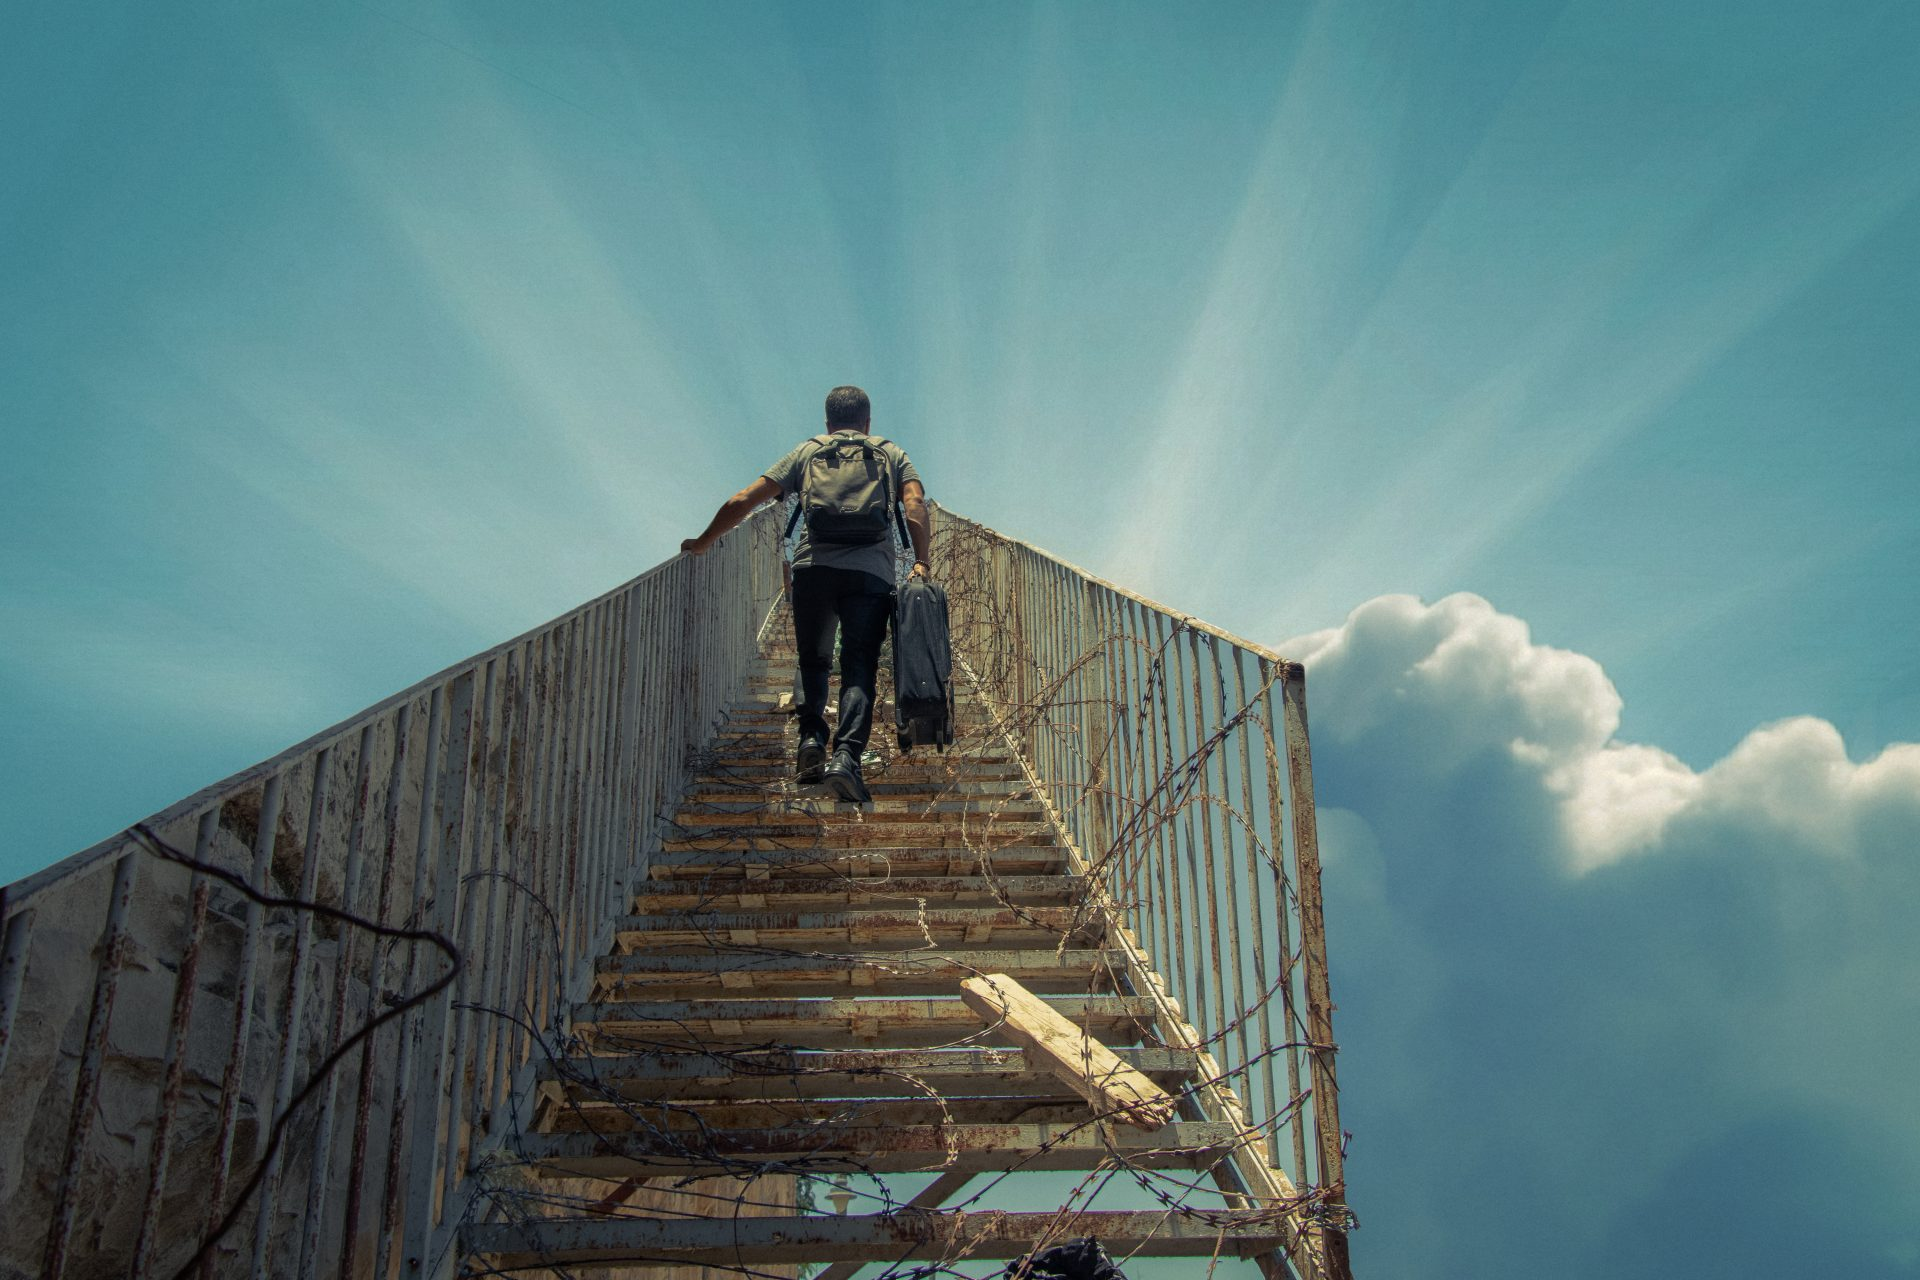 A man ascends a stairway to the sky carrying a suitcase. The stairs are mired with barbed wire.